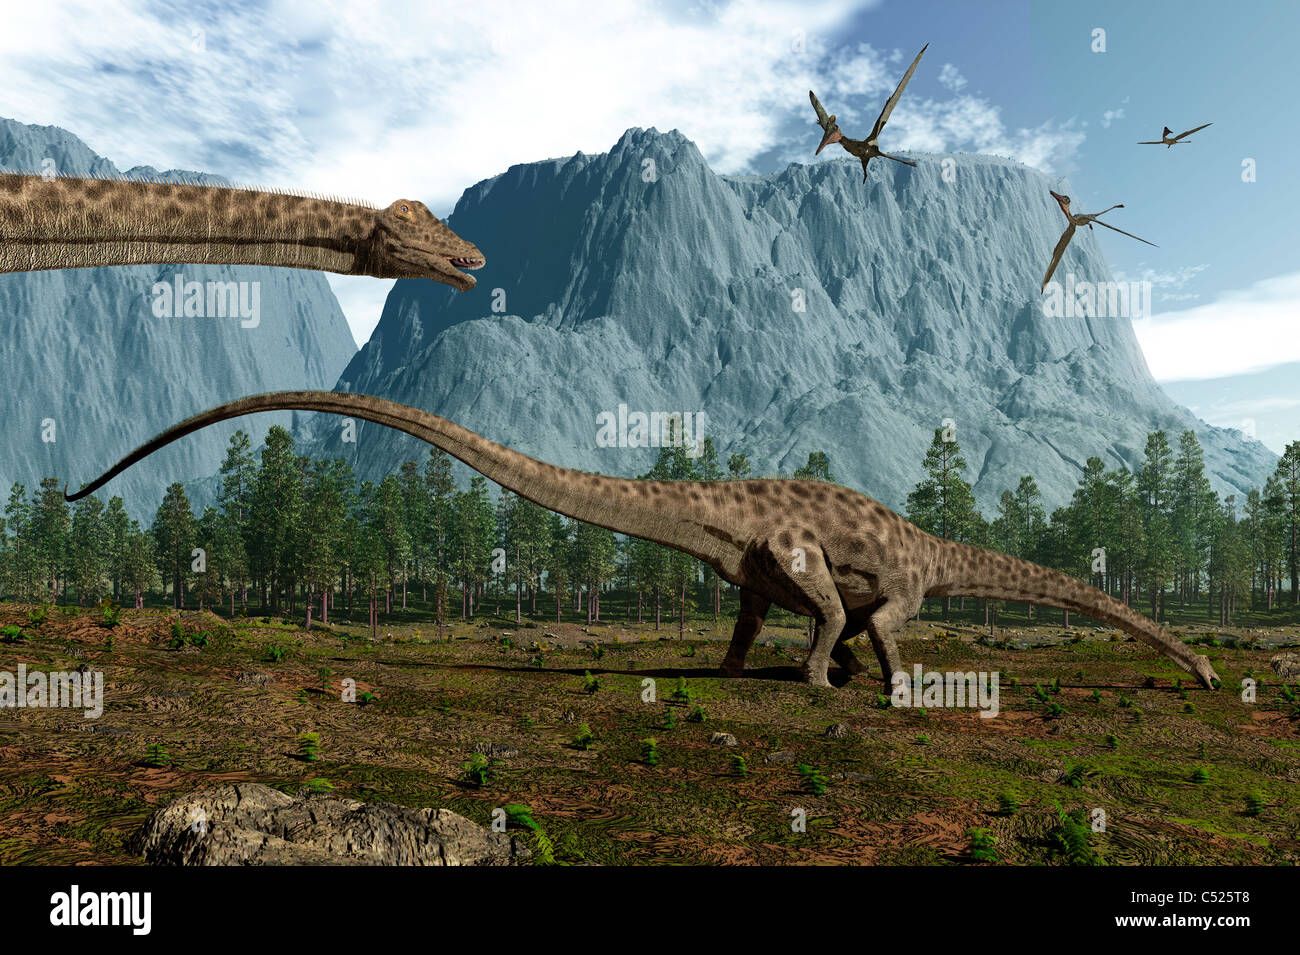 Diplodocus dinosaurs graze while pterodactyls fly overhead. - Stock Image